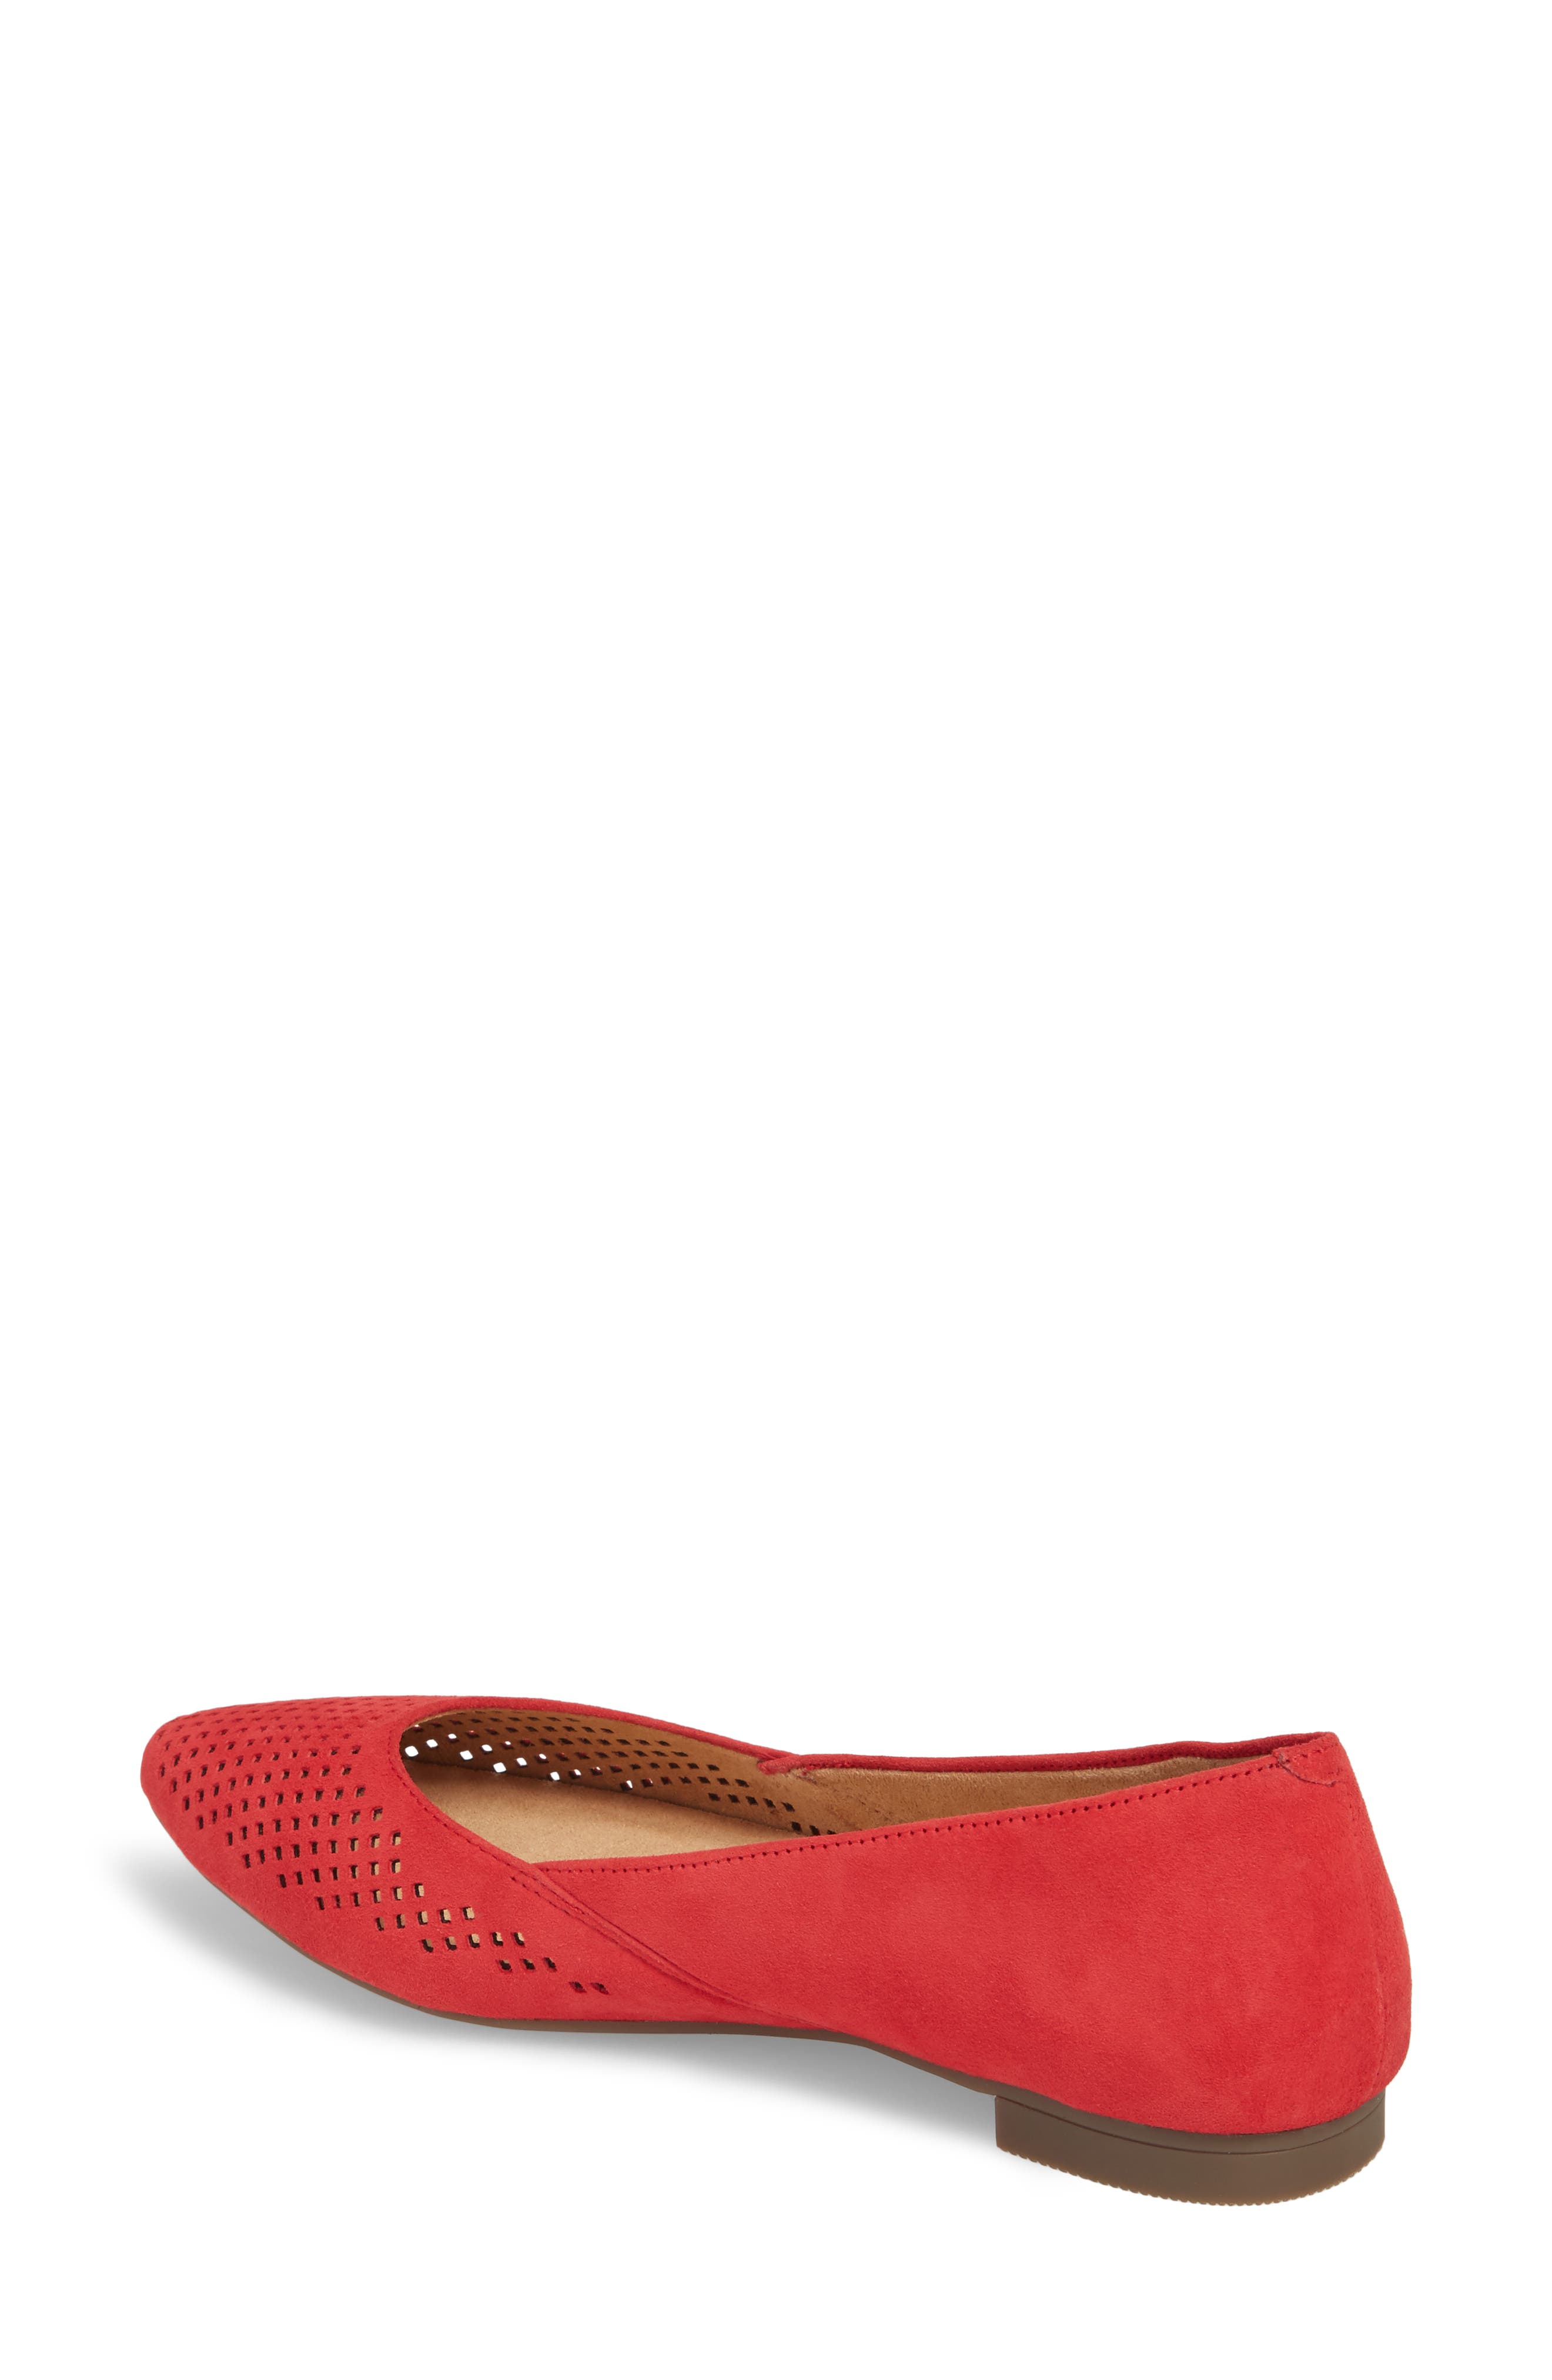 Alternate Image 2  - Vionic Posey Flat (Women)